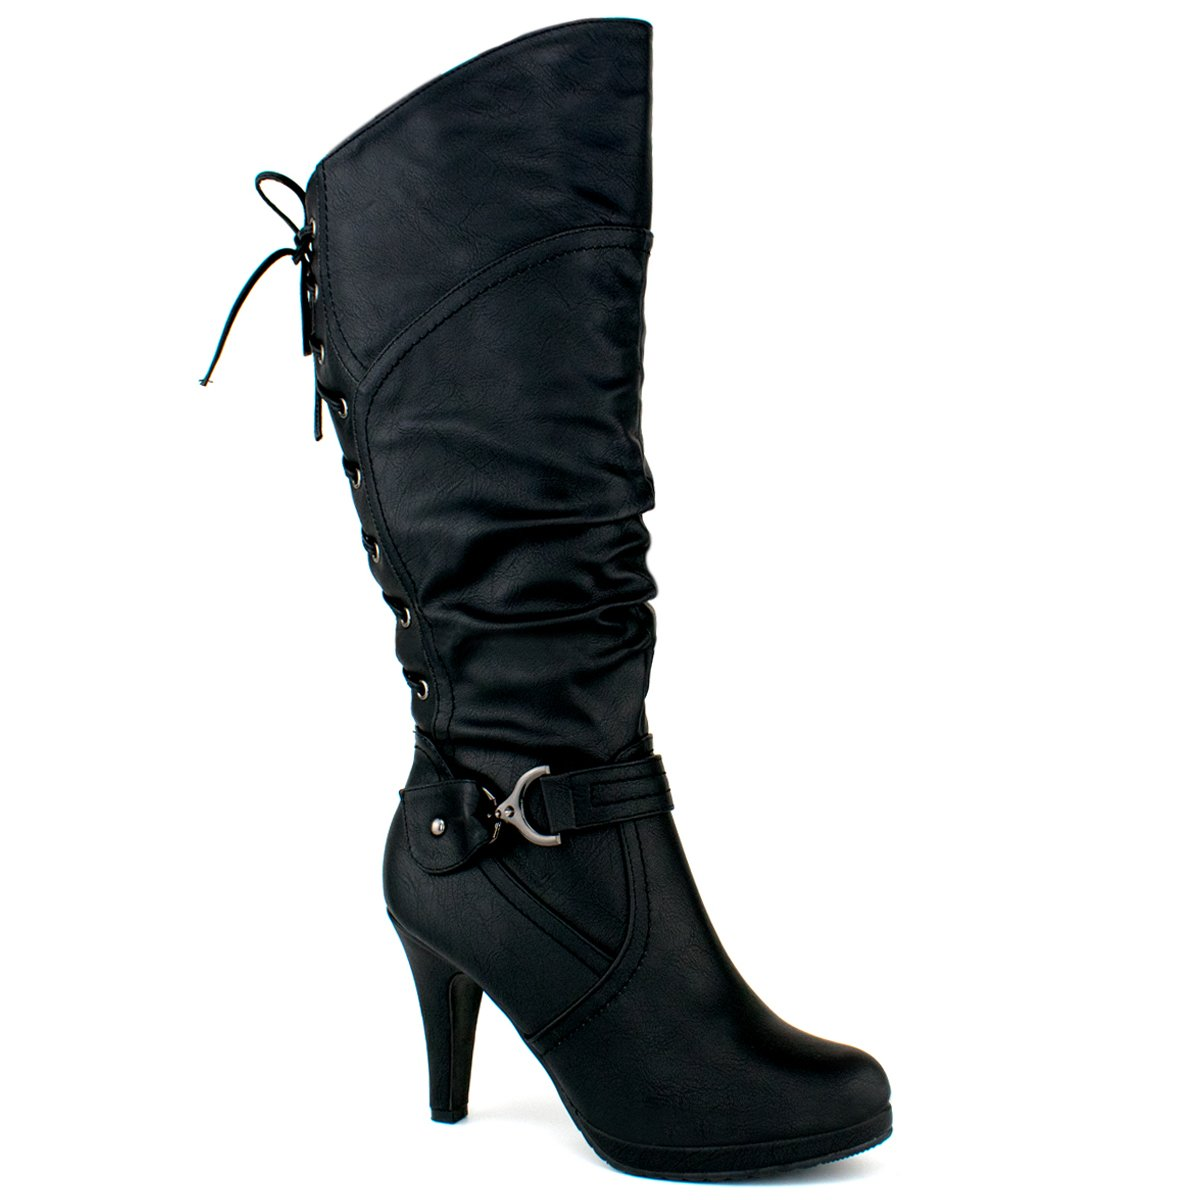 Top Moda Women's Knee Lace-up High Heel Boots PAGE-65